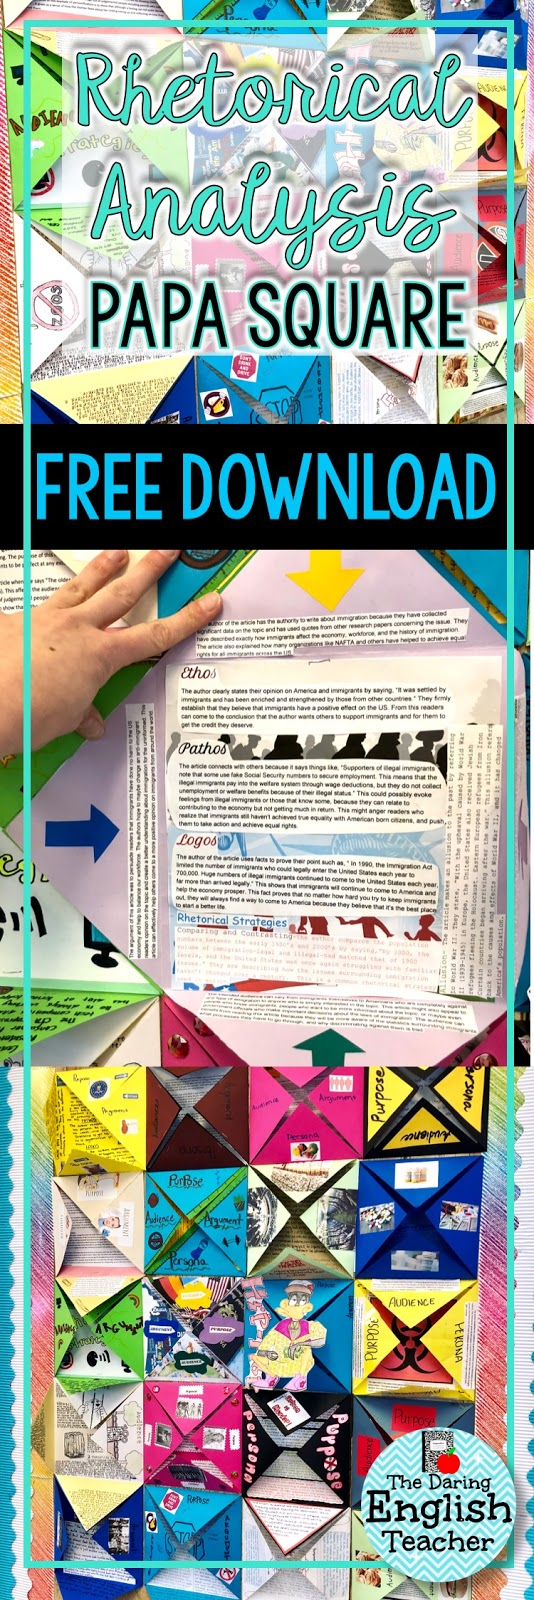 The daring english teacher rhetorical analysis art project for middle school and high school students biocorpaavc